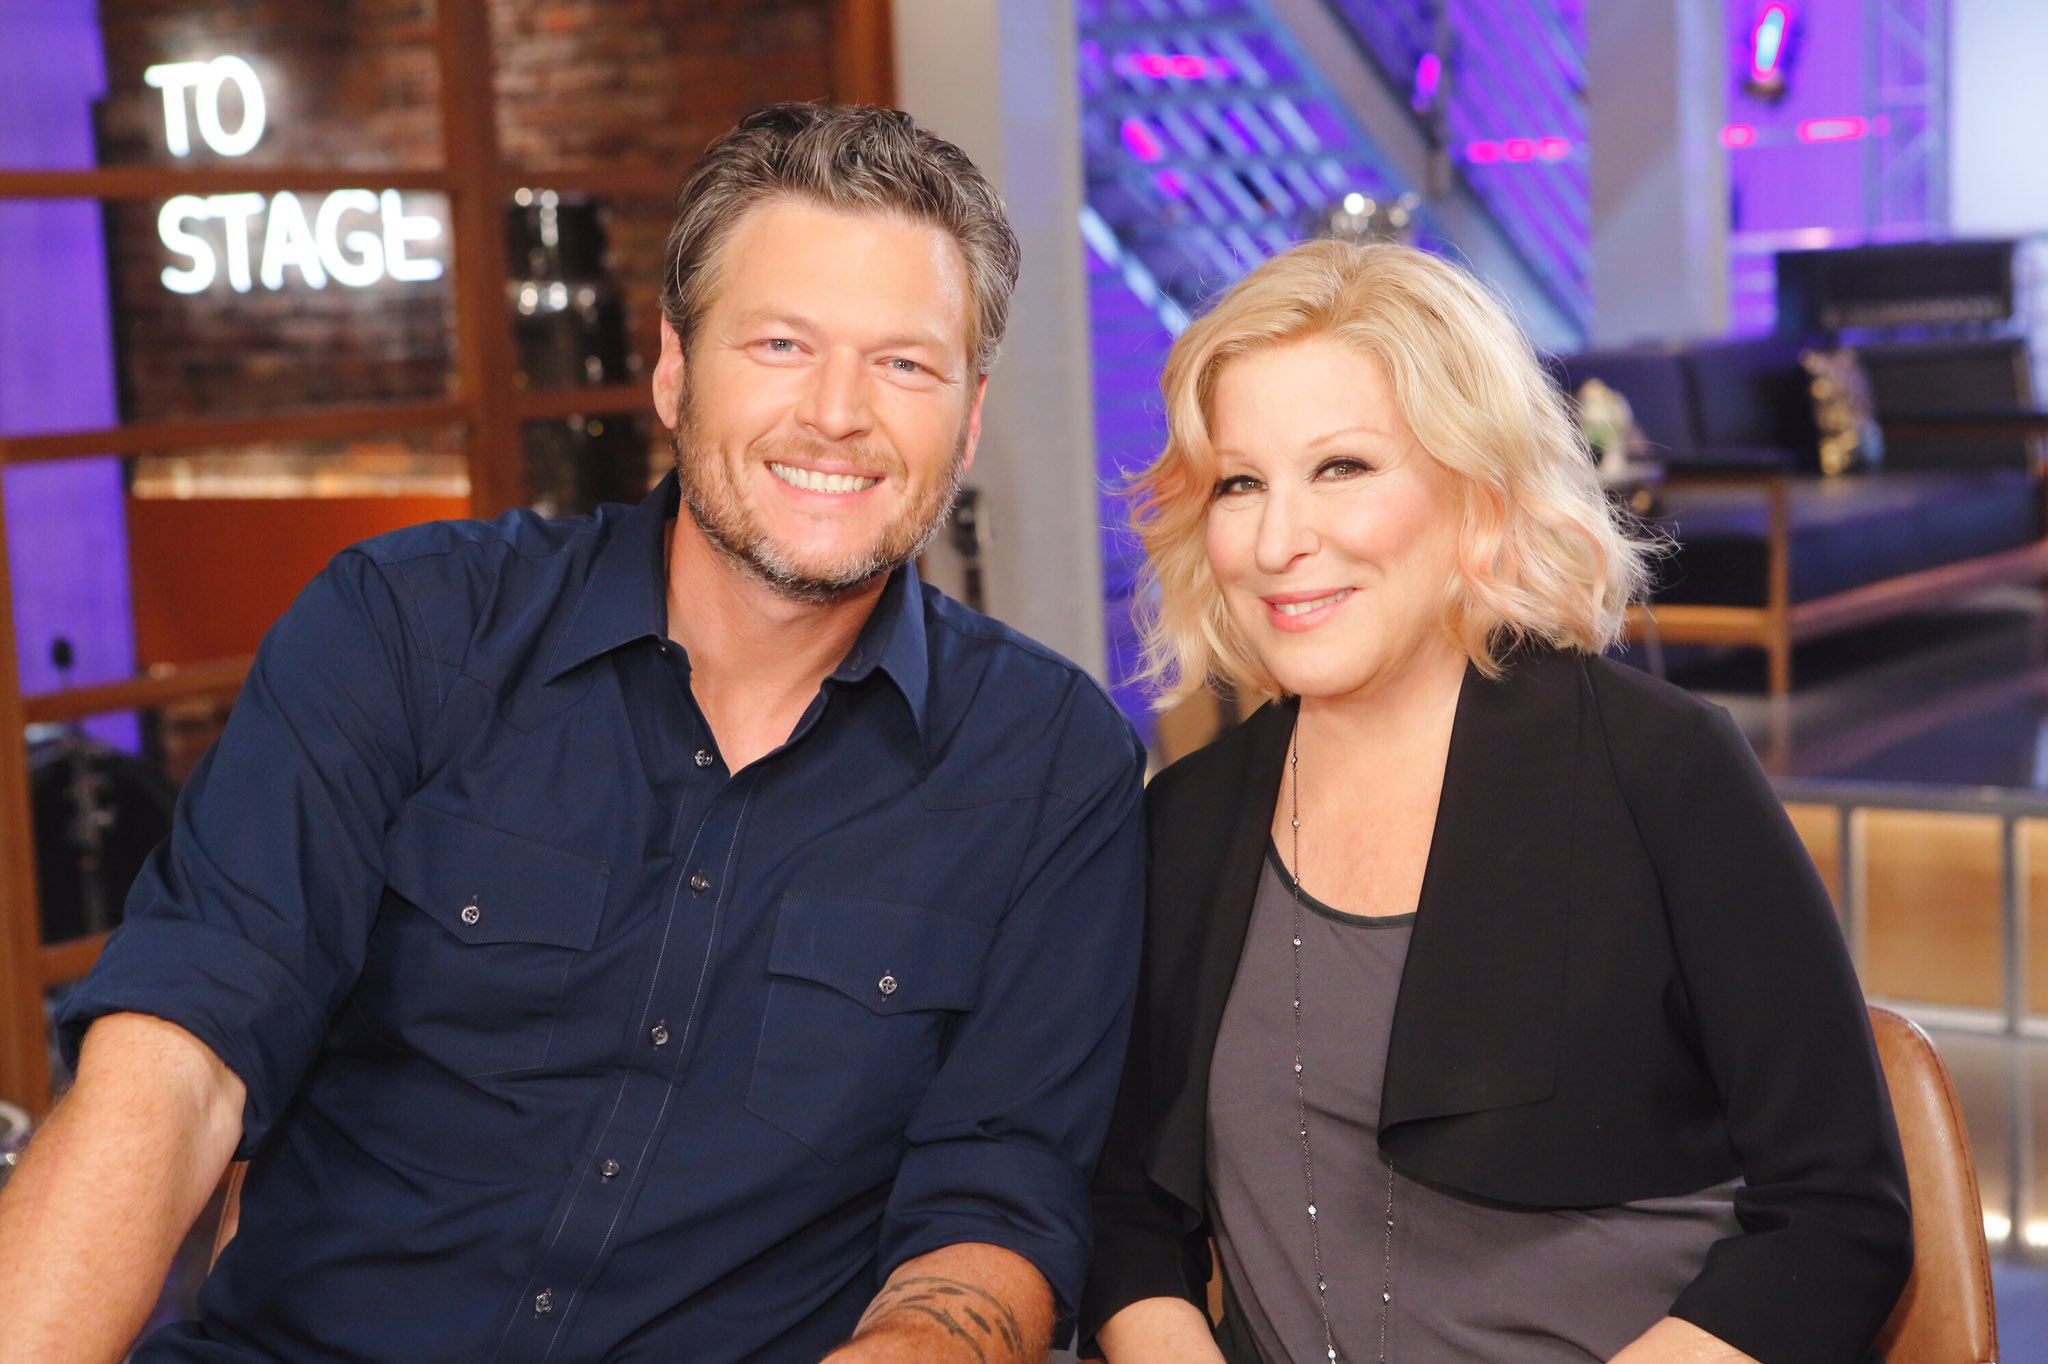 Finally got the picture!!!! Thank you @BetteMidler!!! #TeamBlake https://t.co/1MzUVJnxT6